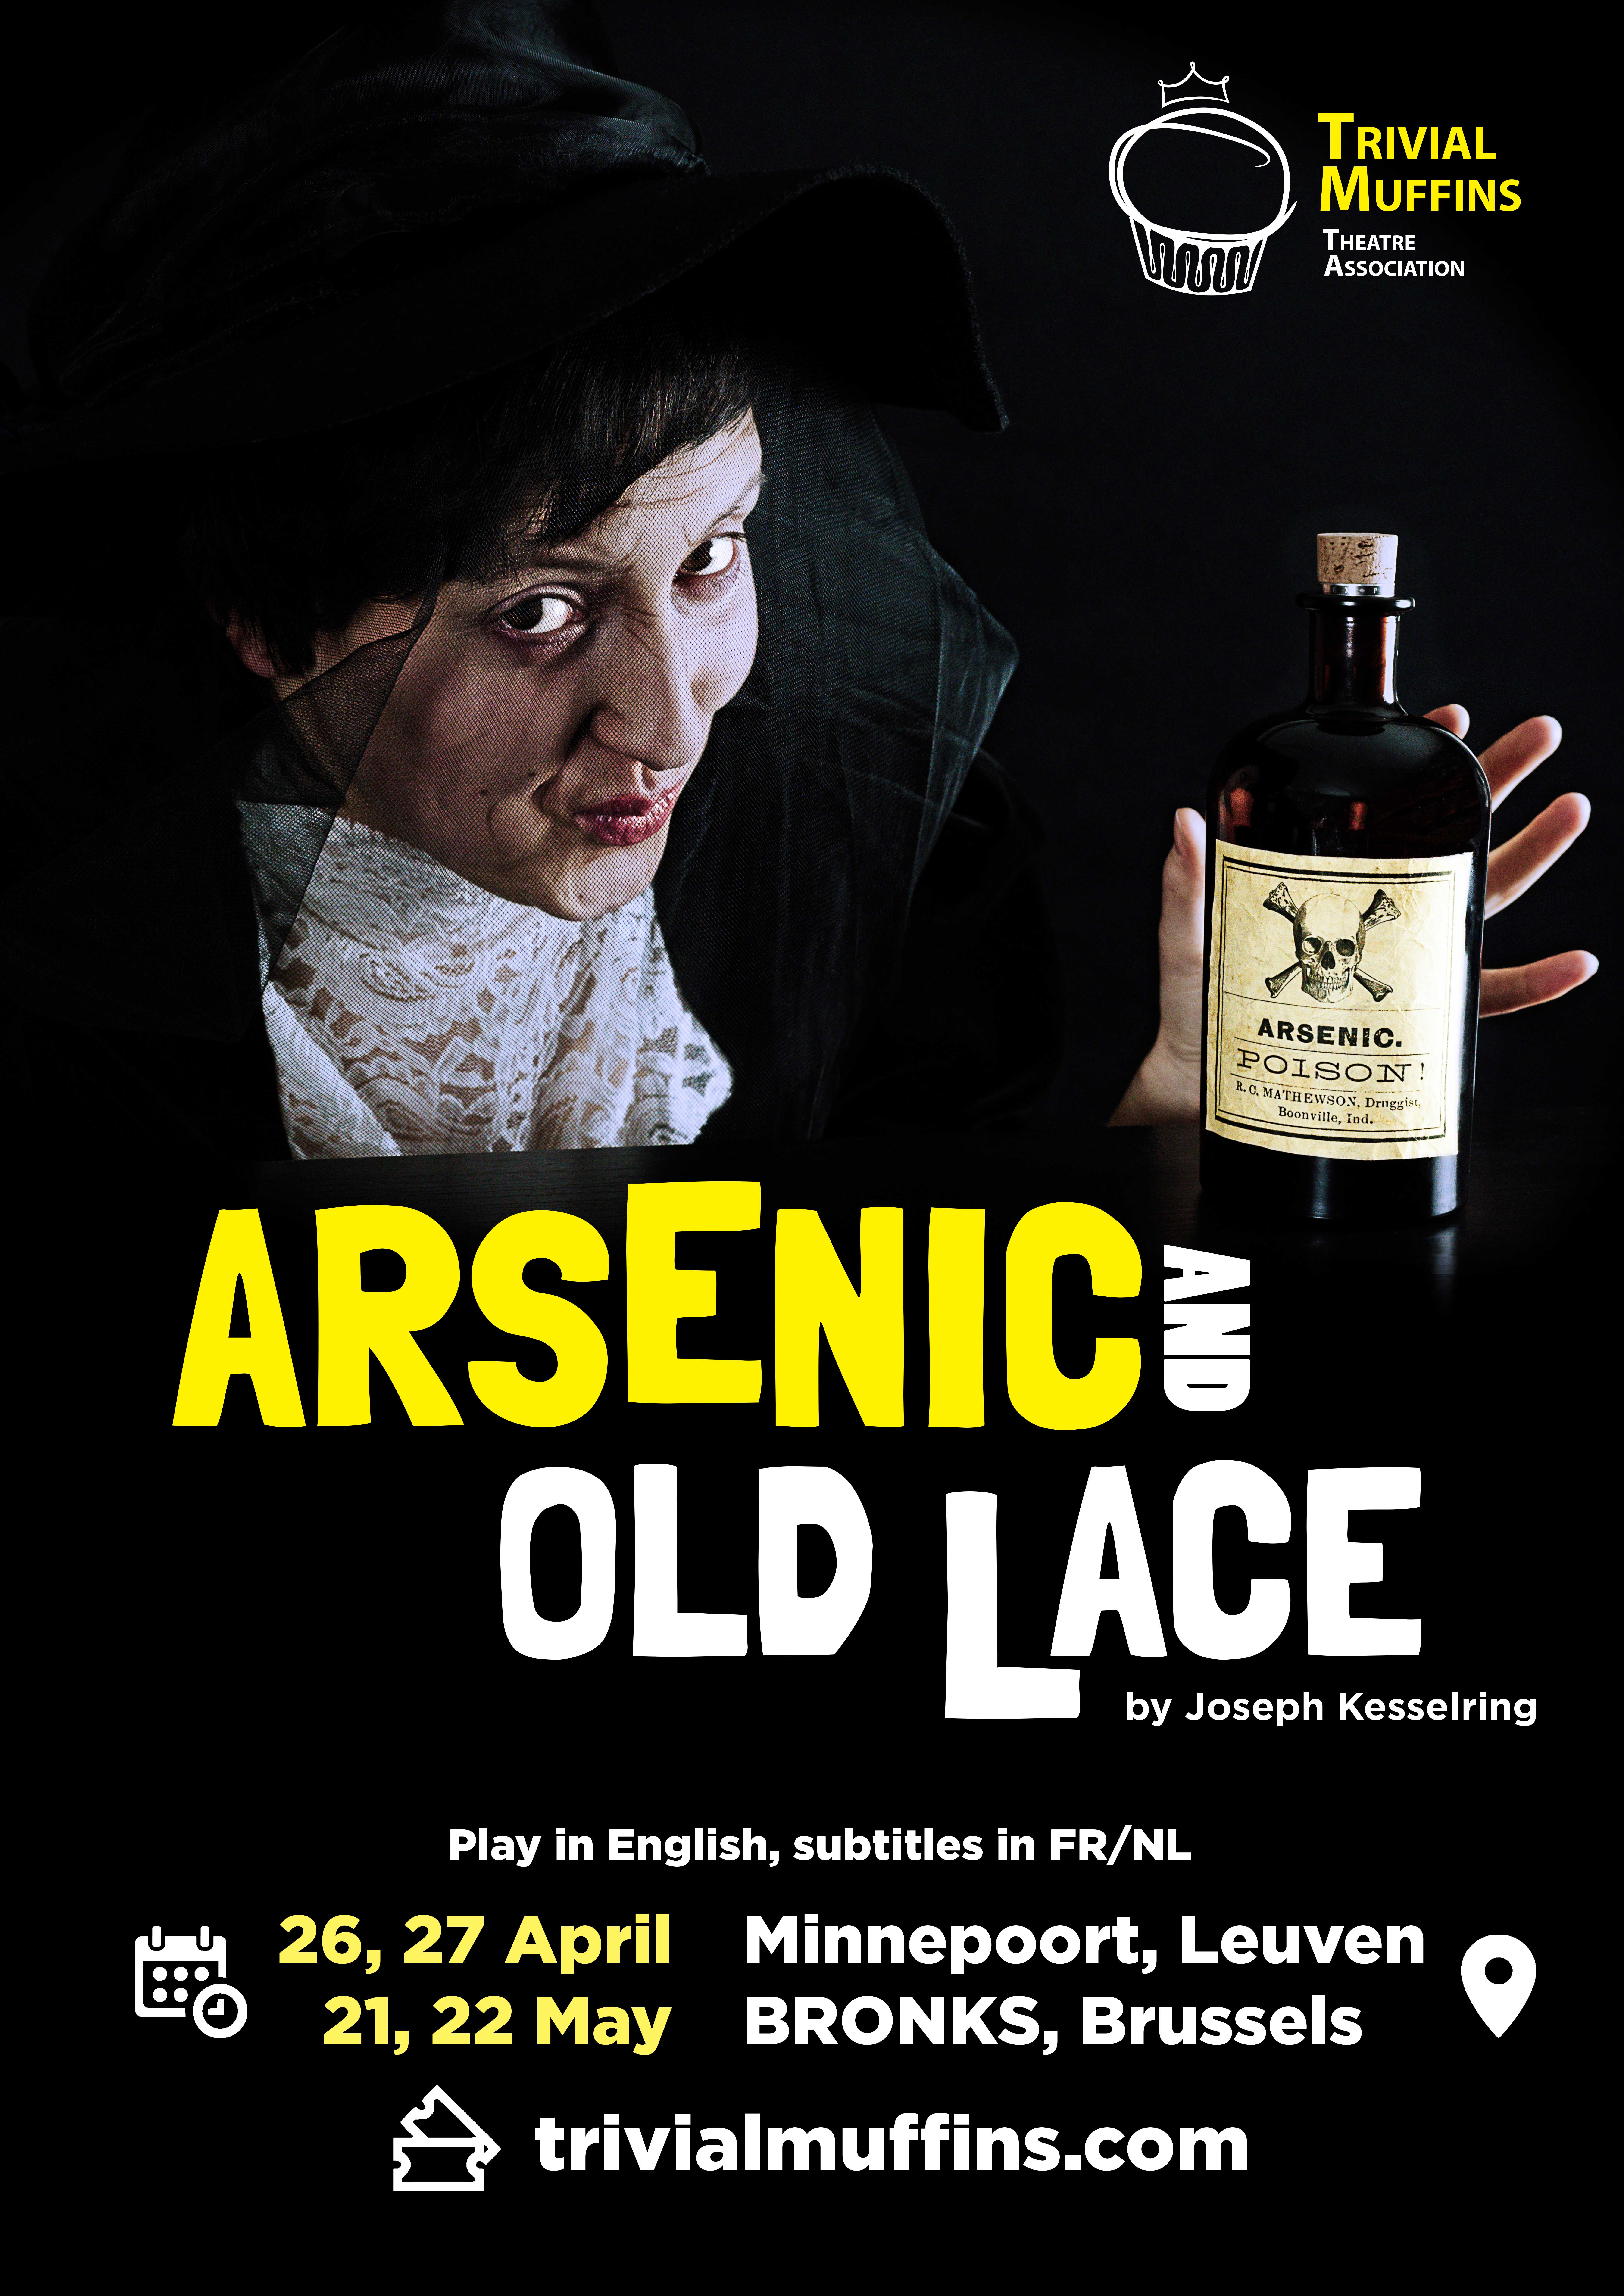 2019 Arsenic and Old Lace poster